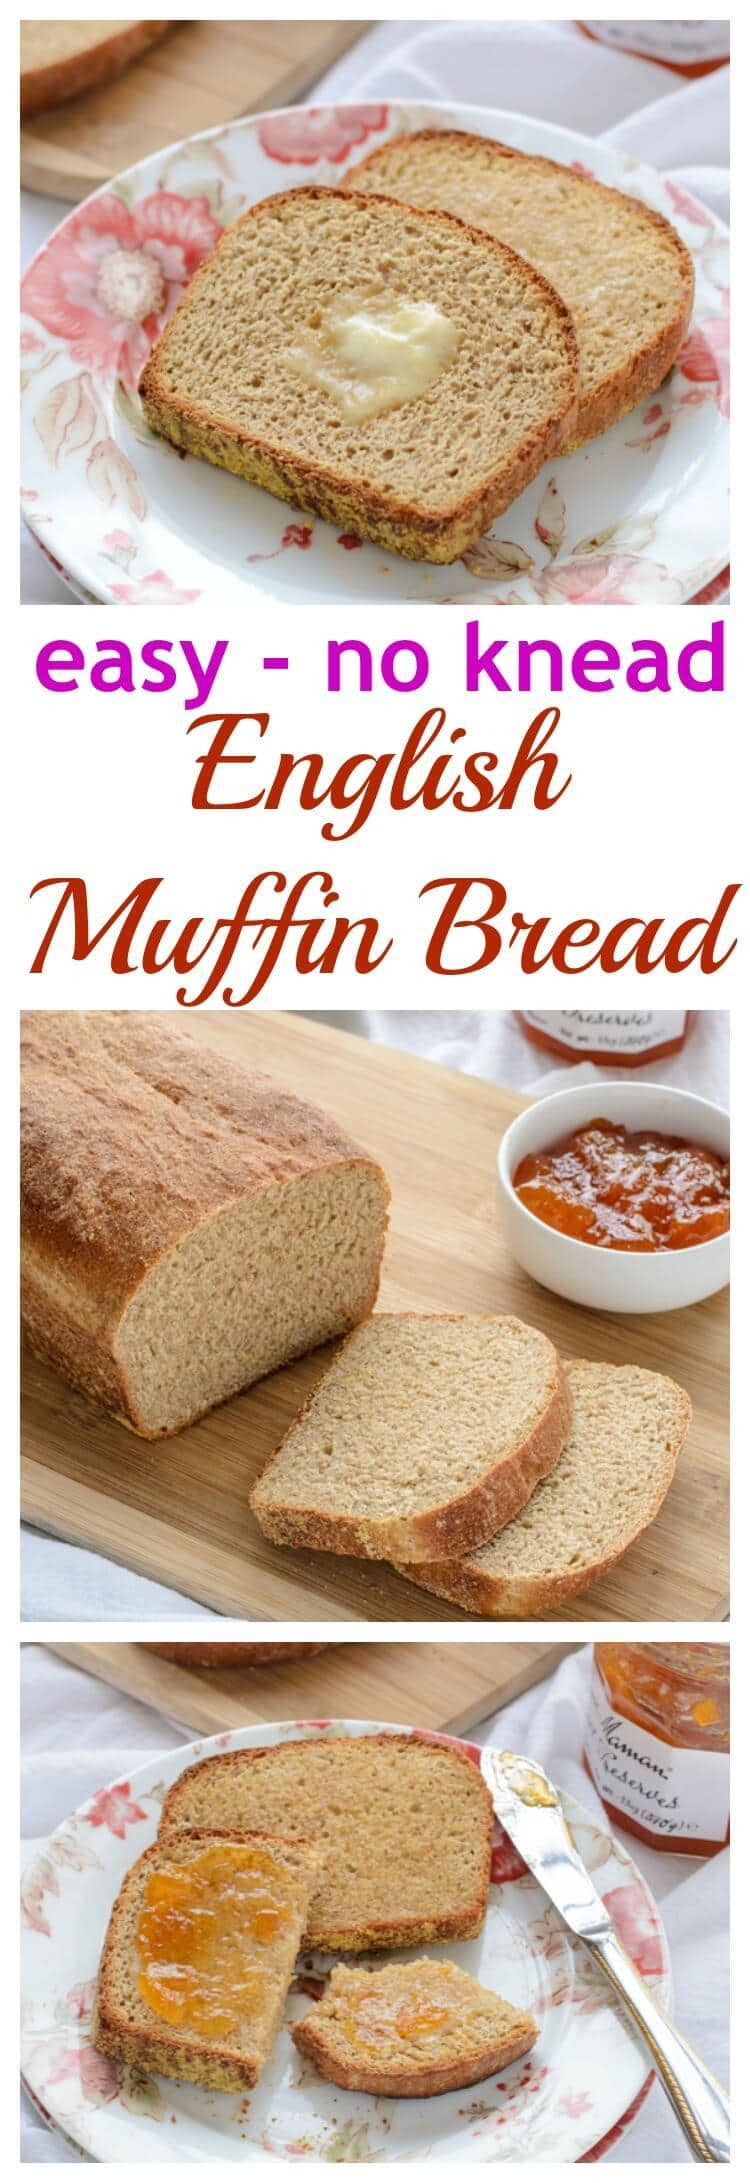 How to make bread that tastes just like an English muffin but is so much quicker and easier! This recipe uses whole-wheat flour, and there is absolutely no kneading. Perfect for even beginning bread bakers!